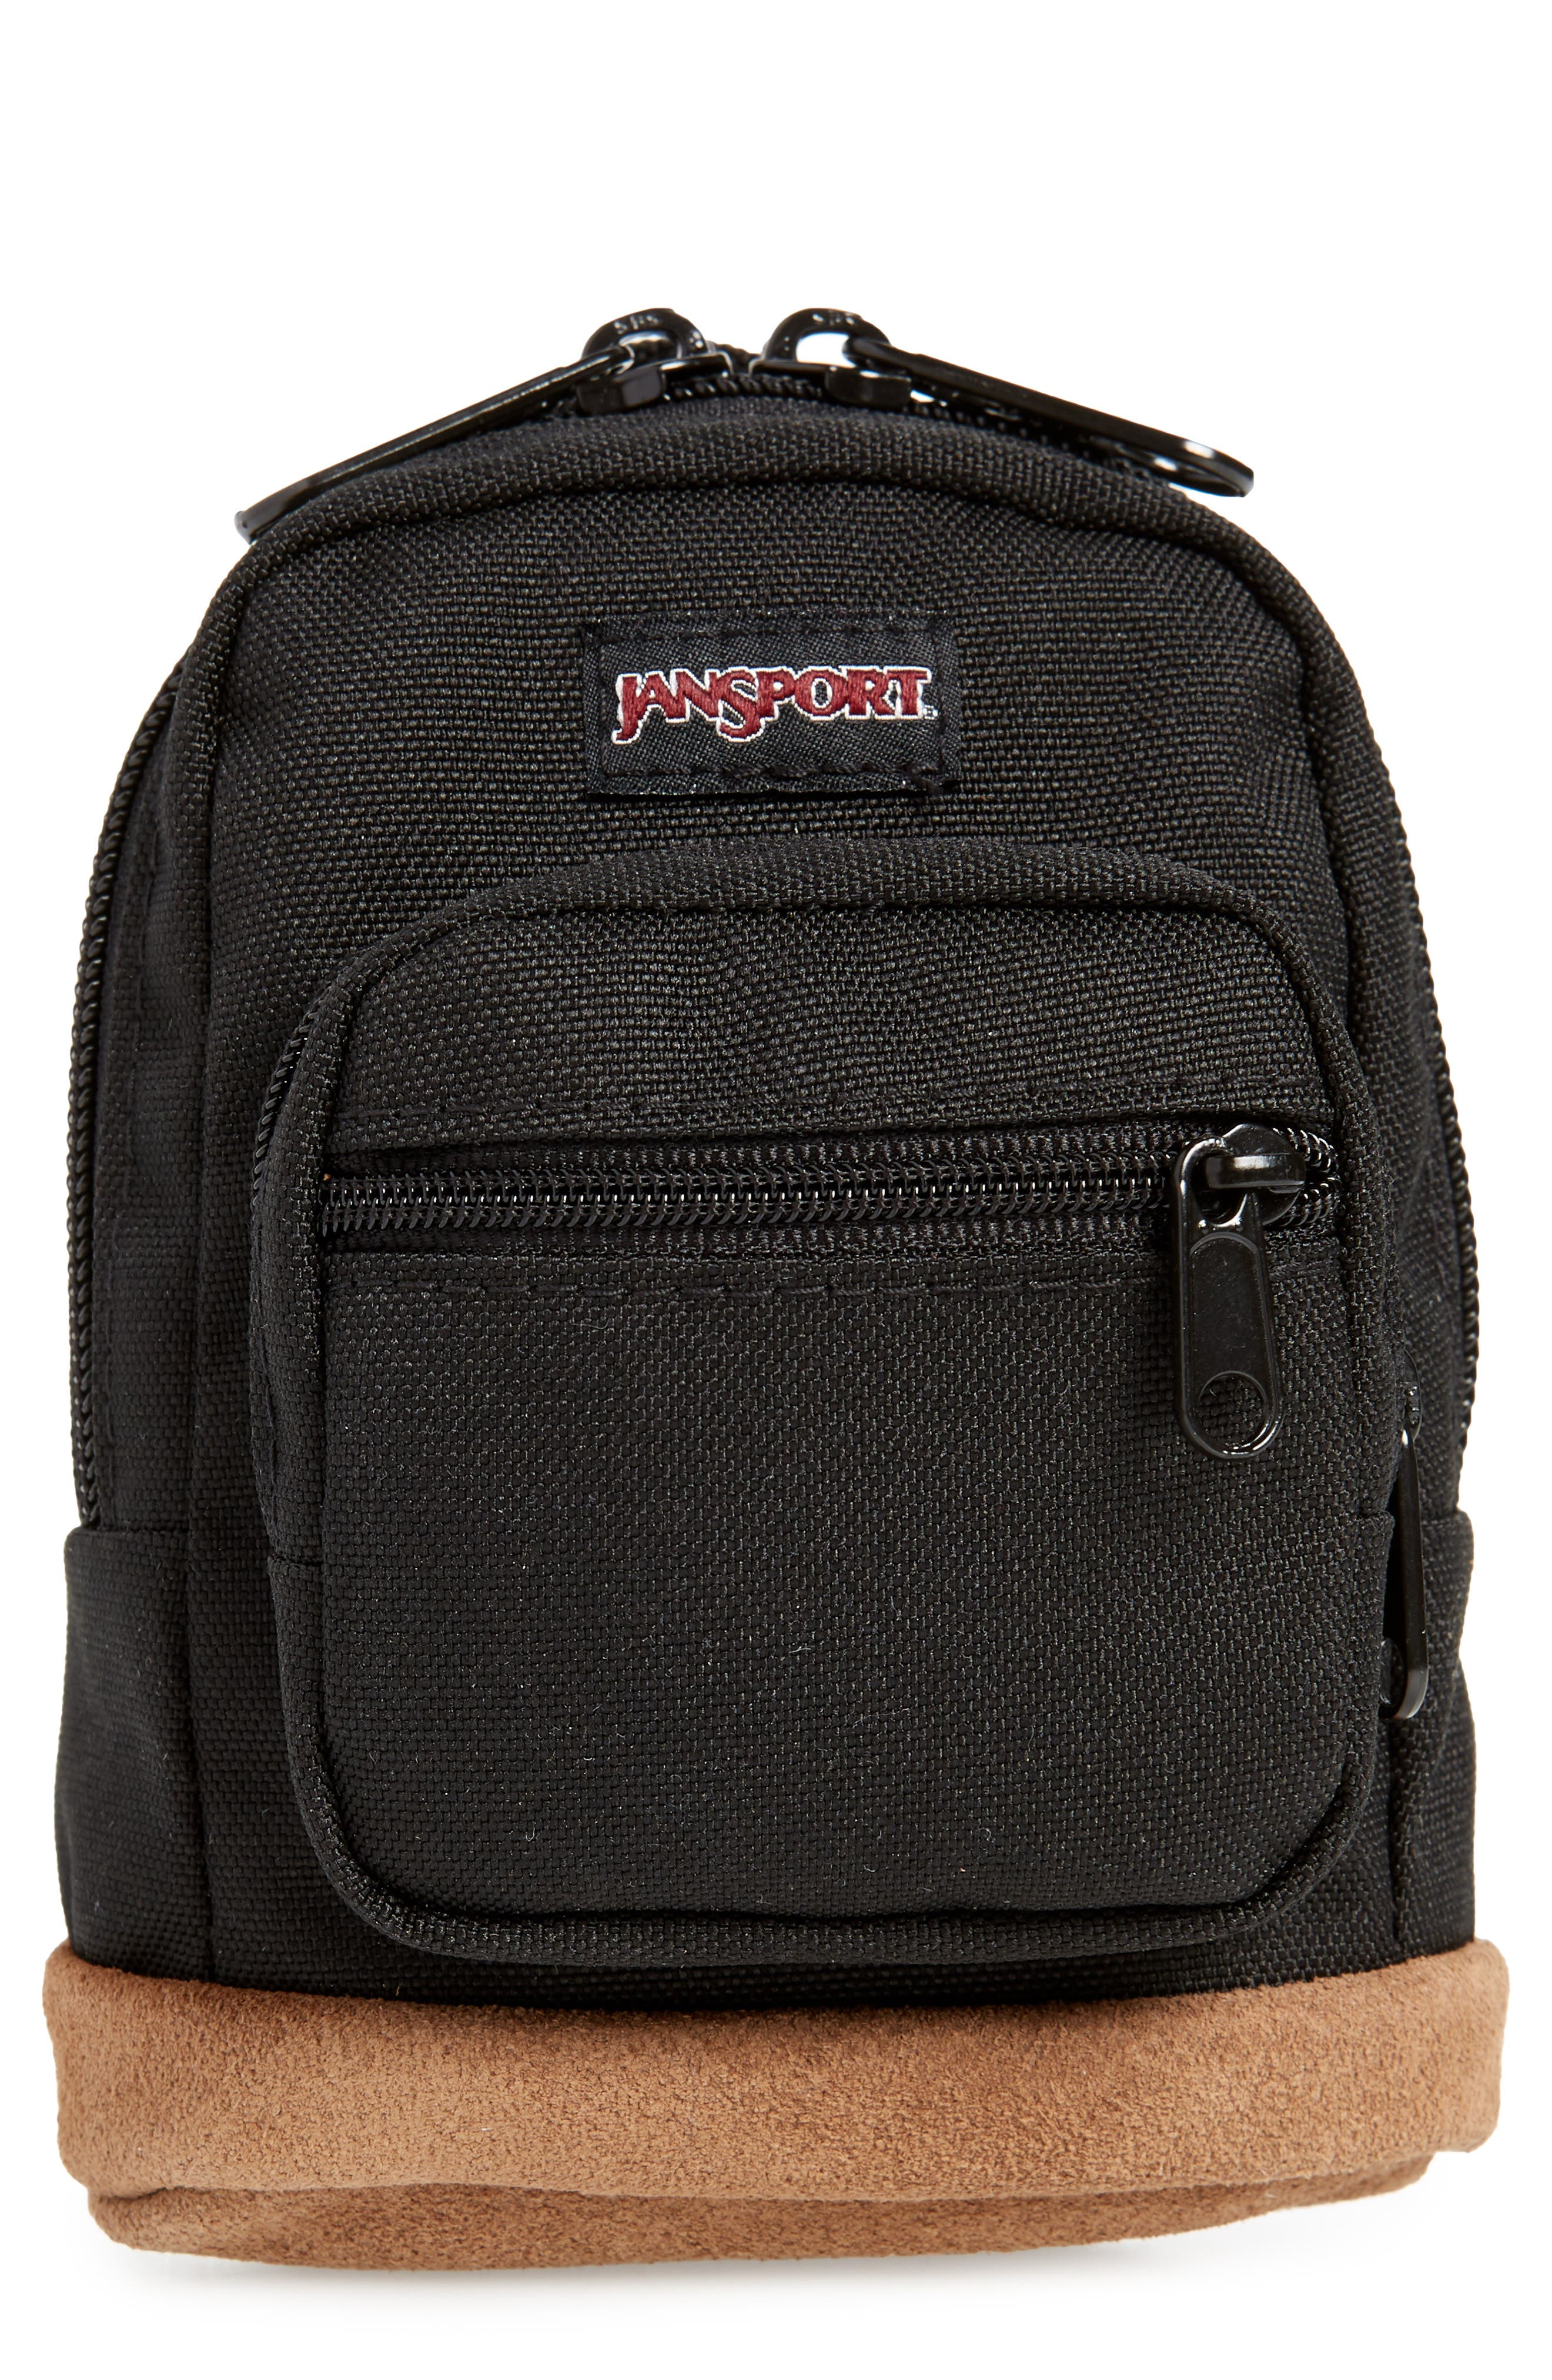 JANSPORT Right Pouch in Black